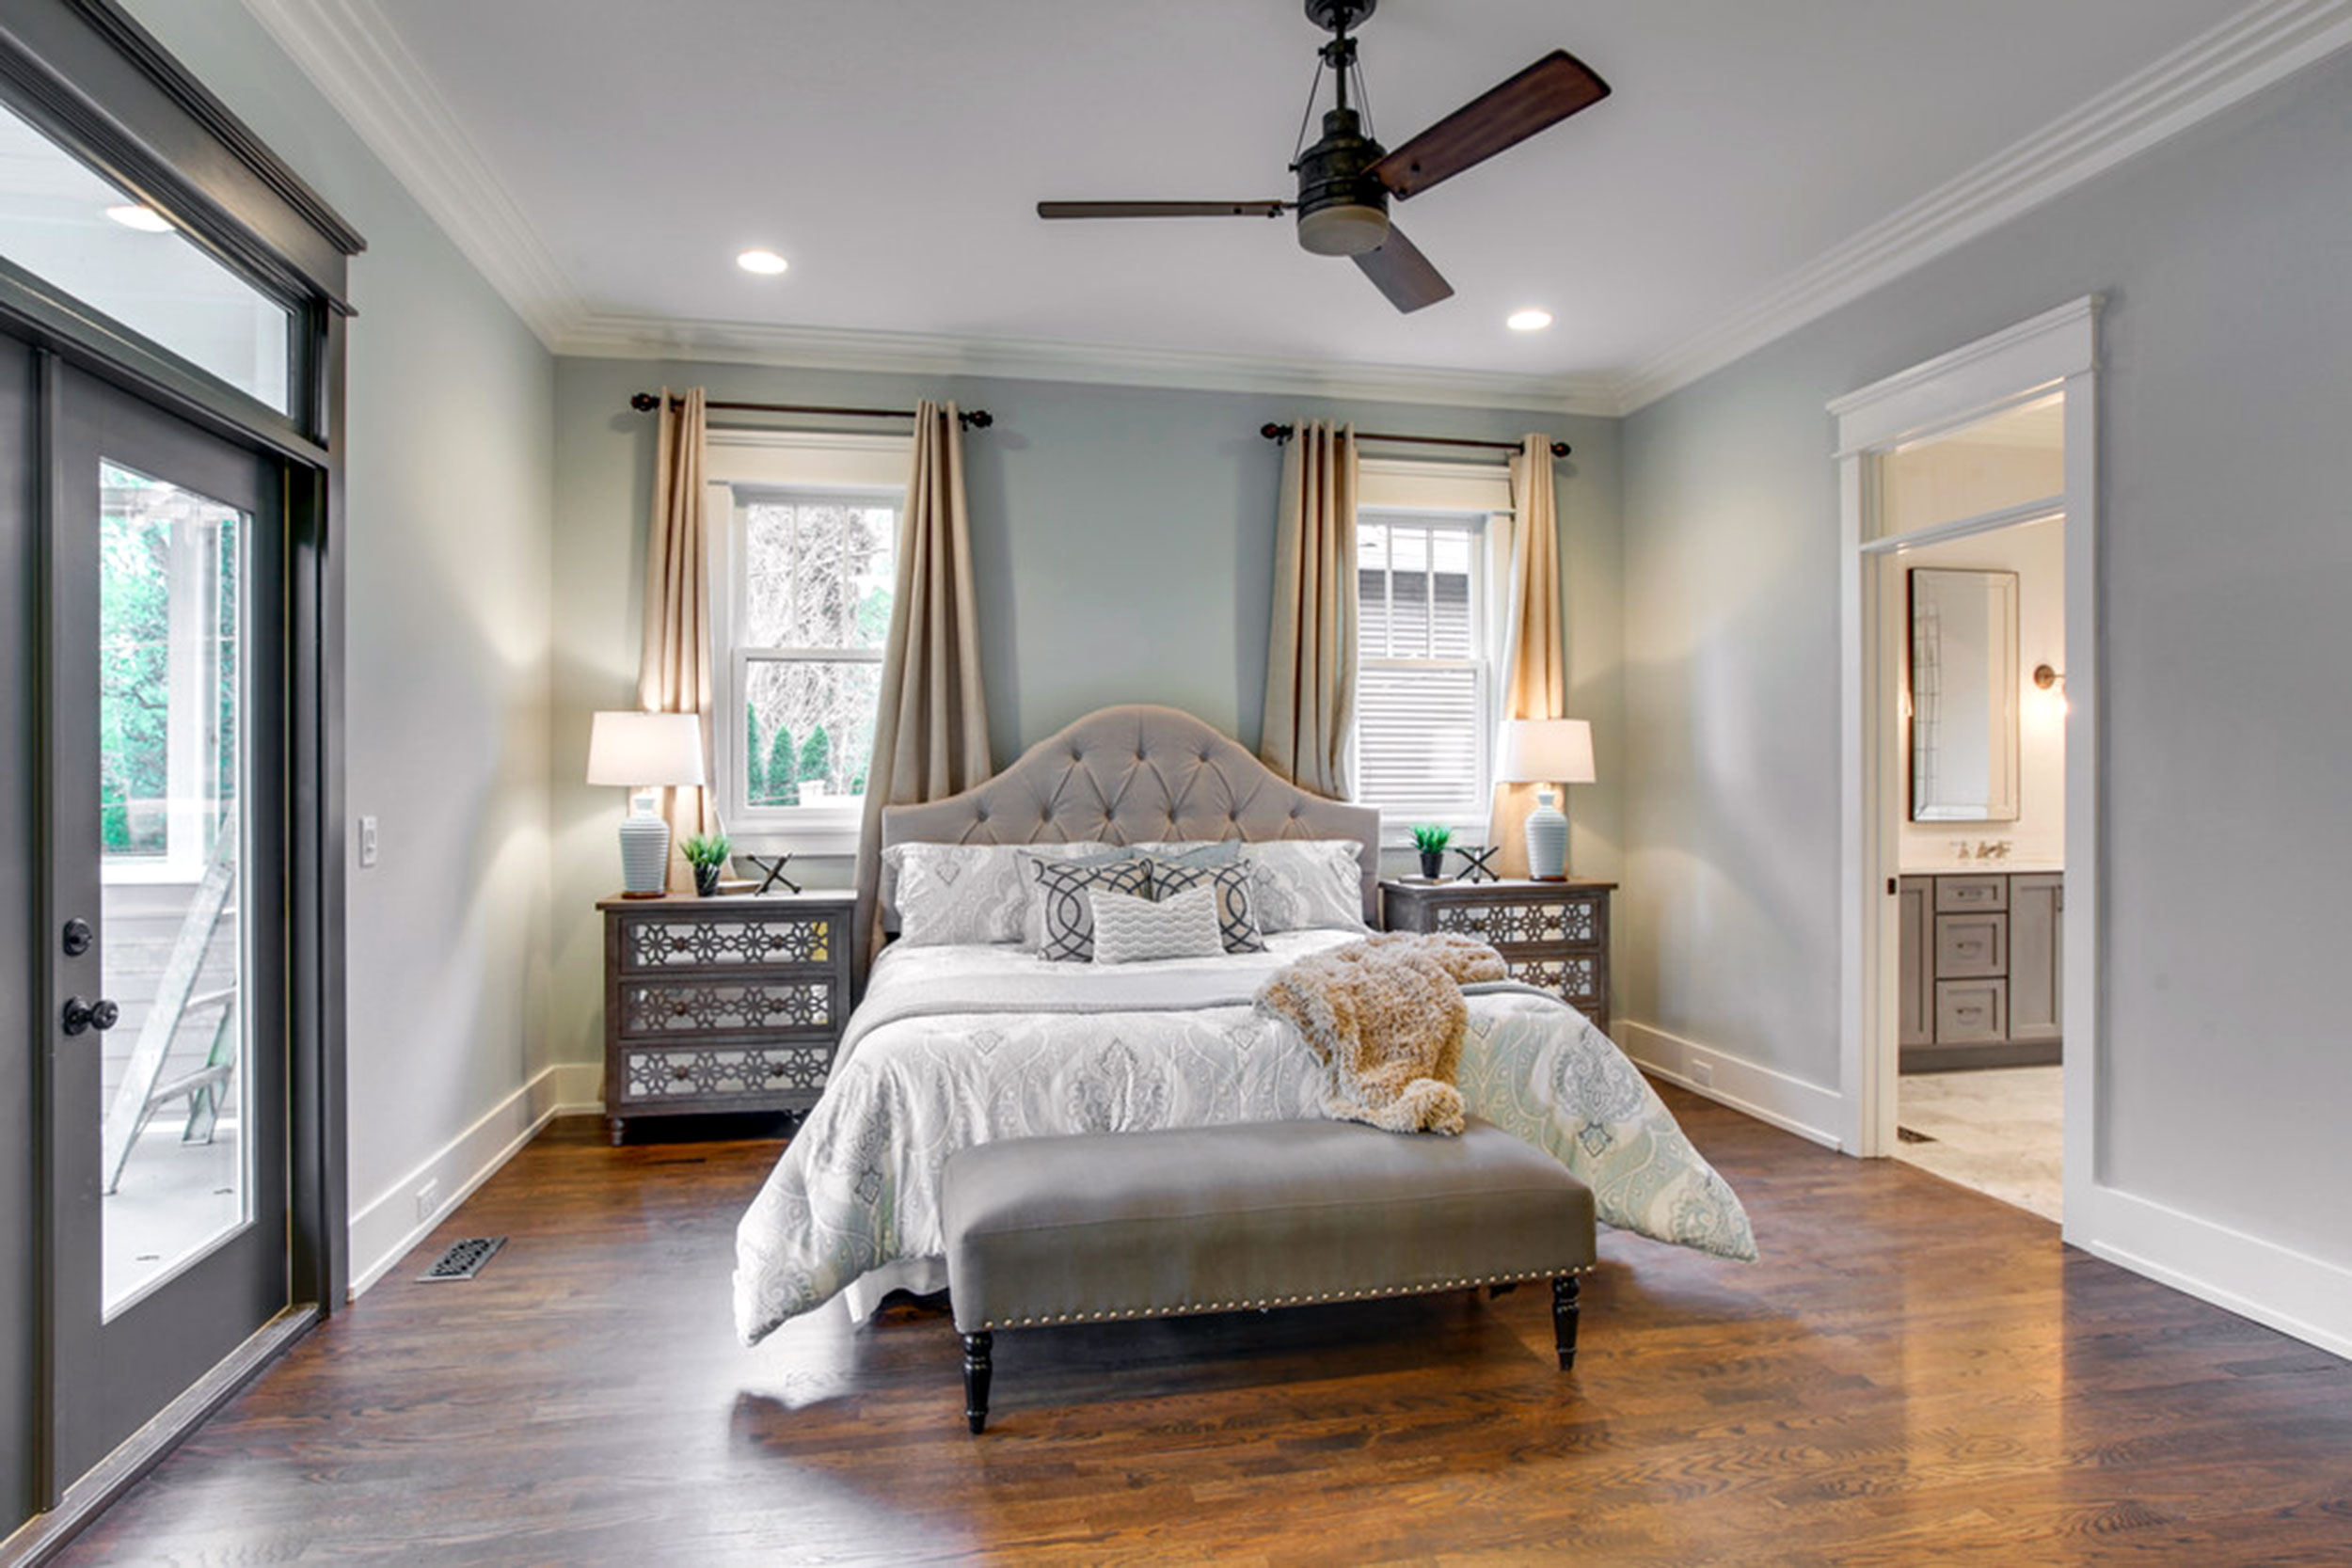 master_bedroom_historic_remodel.jpg